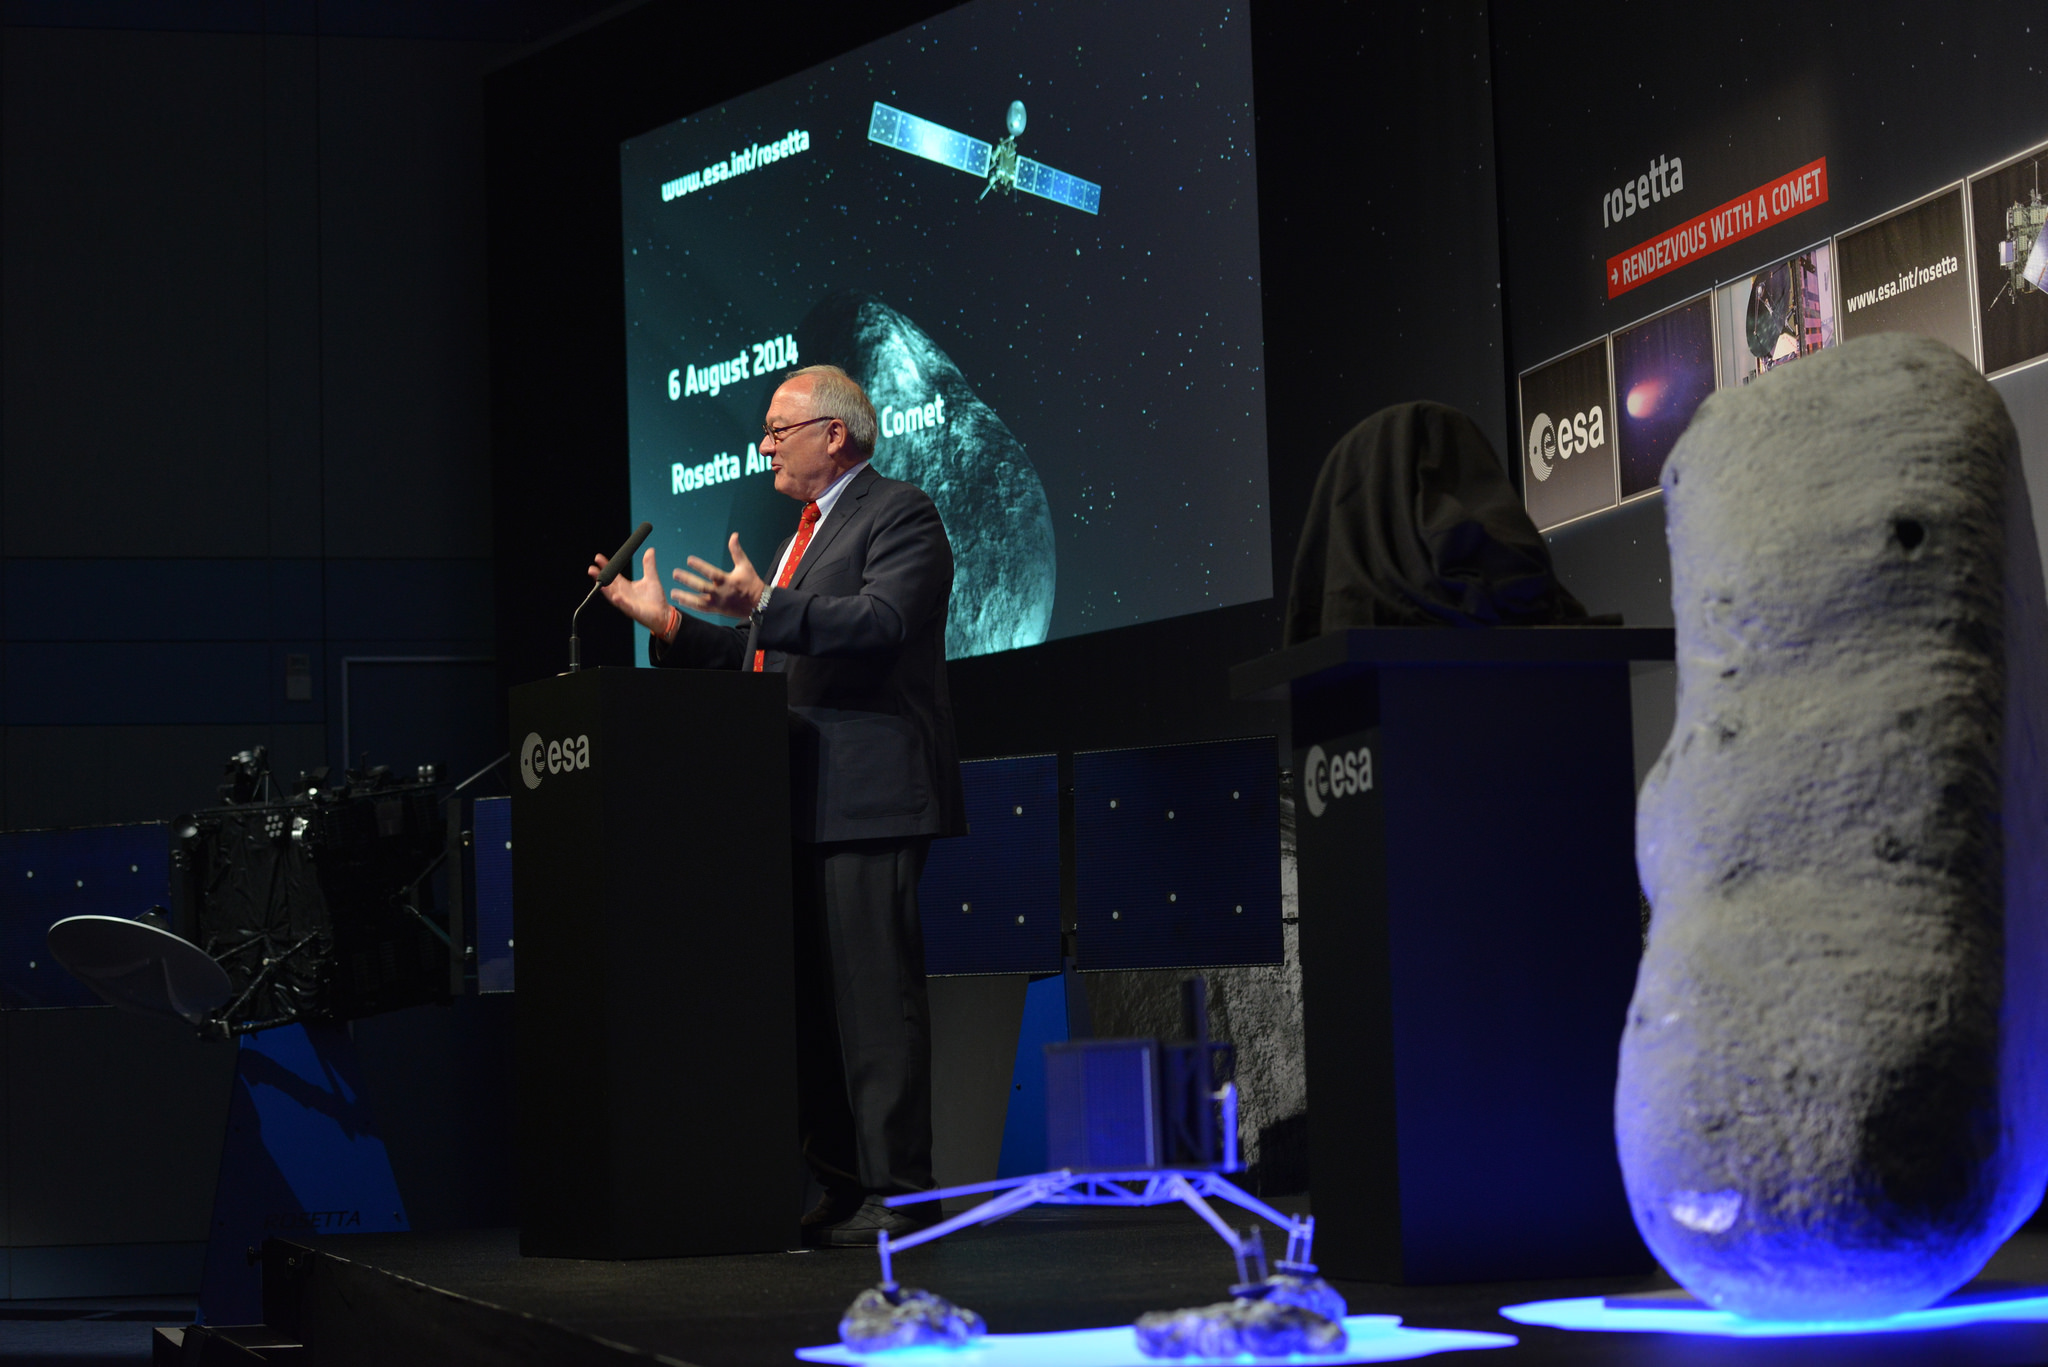 European Space Agency Rosetta Arrival Event